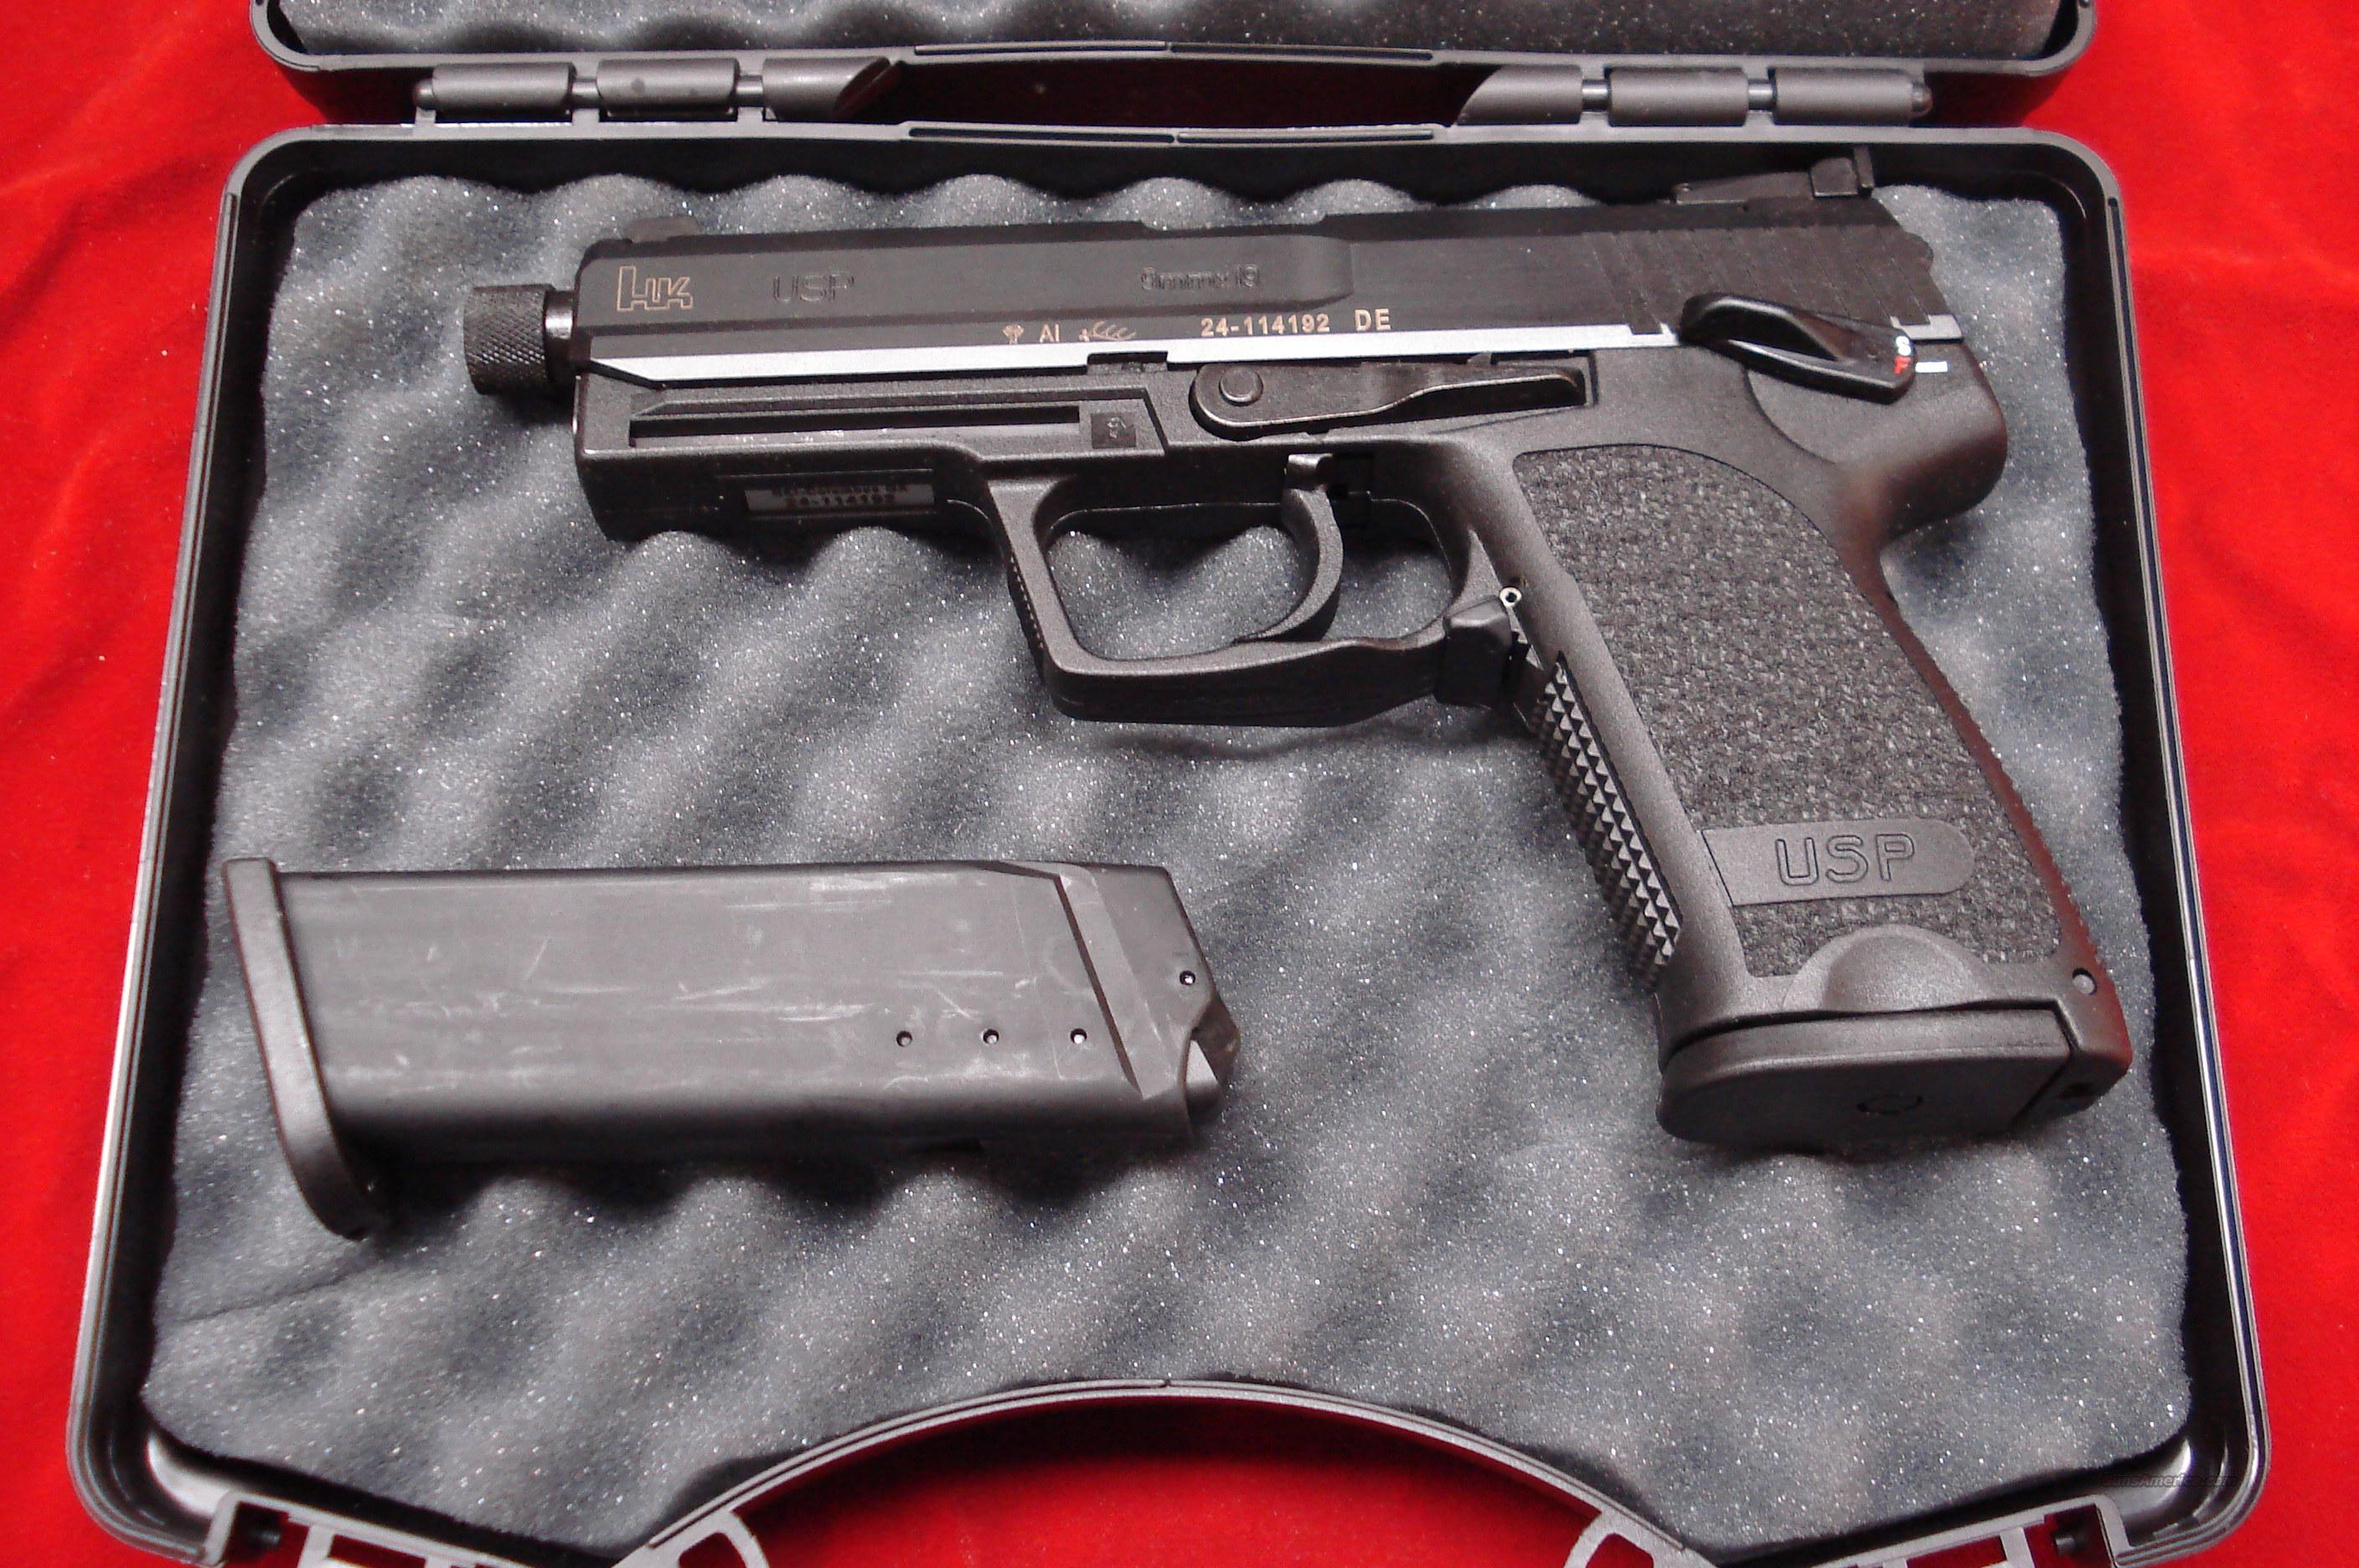 HK USP 9MM SILENCER READY NEW  Guns > Pistols > Heckler & Koch Pistols > Polymer Frame